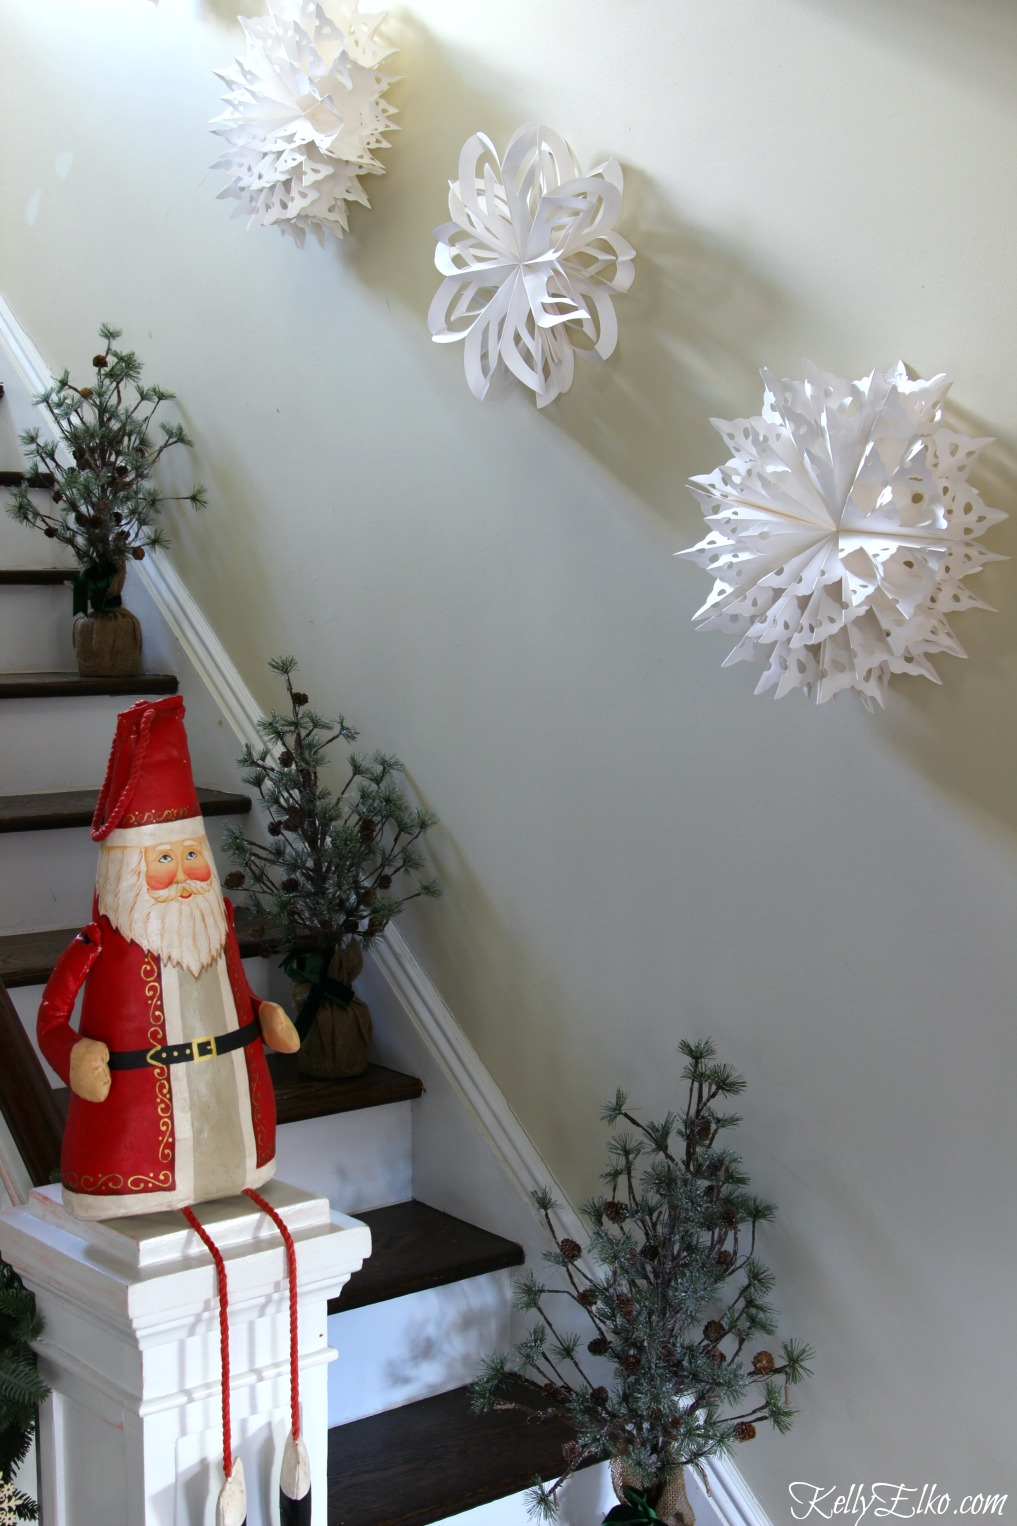 Giant paper snowflakes look amazing on the staircase wall kellyelko.com